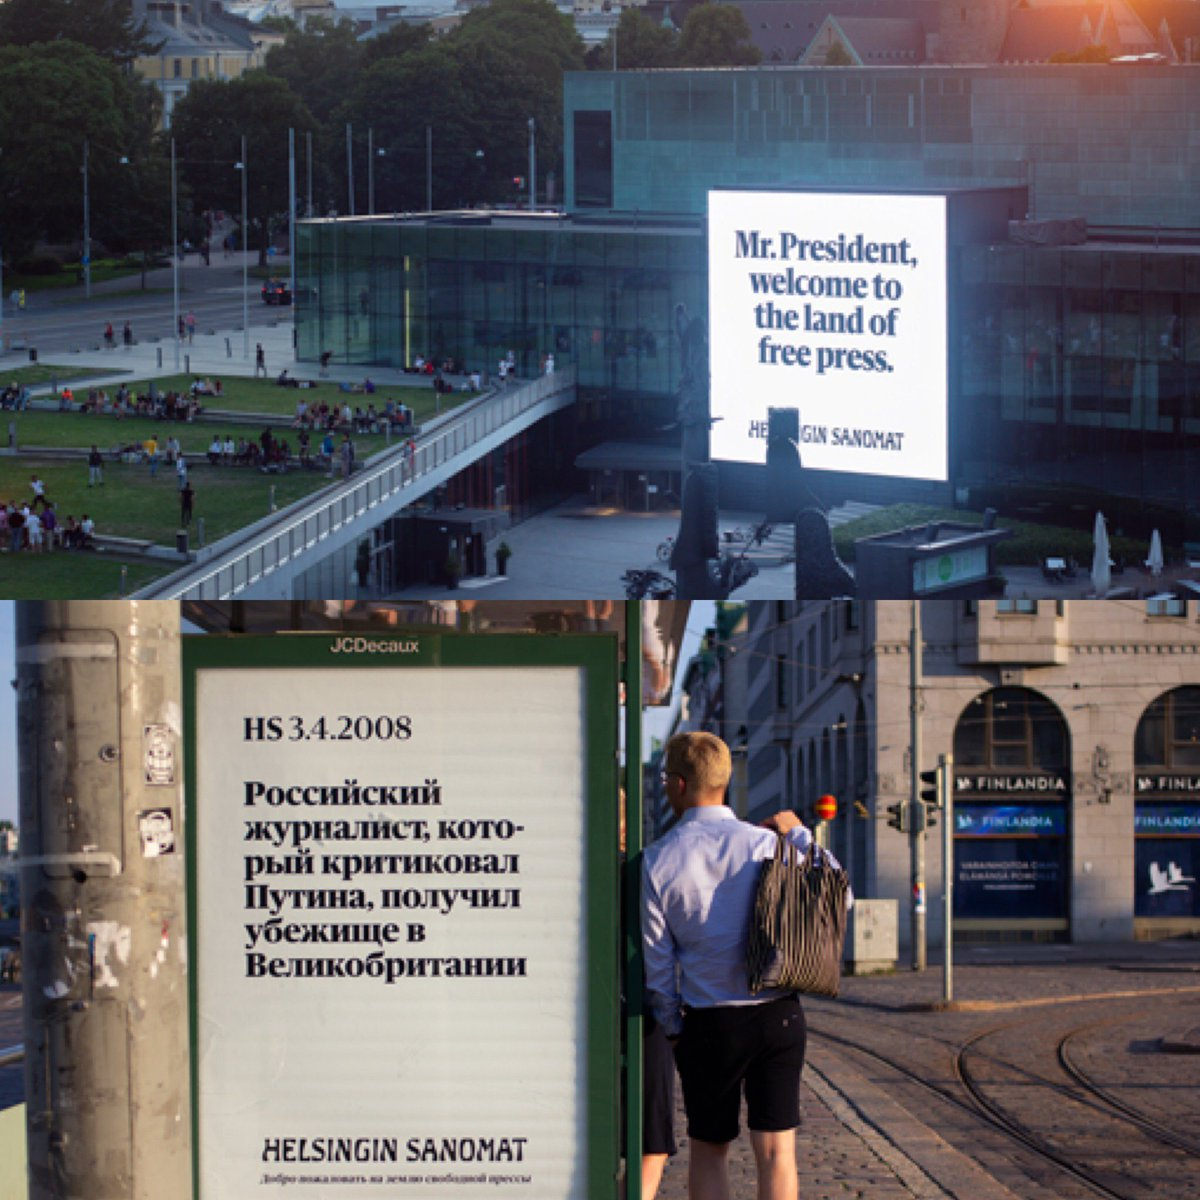 Helsingin Sanomat, the largest subscription newspaper in the Nordics, has put up billboards on Trump and Putin's routes from the airport to the summit, filled with messages and news headlines regarding them and their attitude towards the freedom of the press.